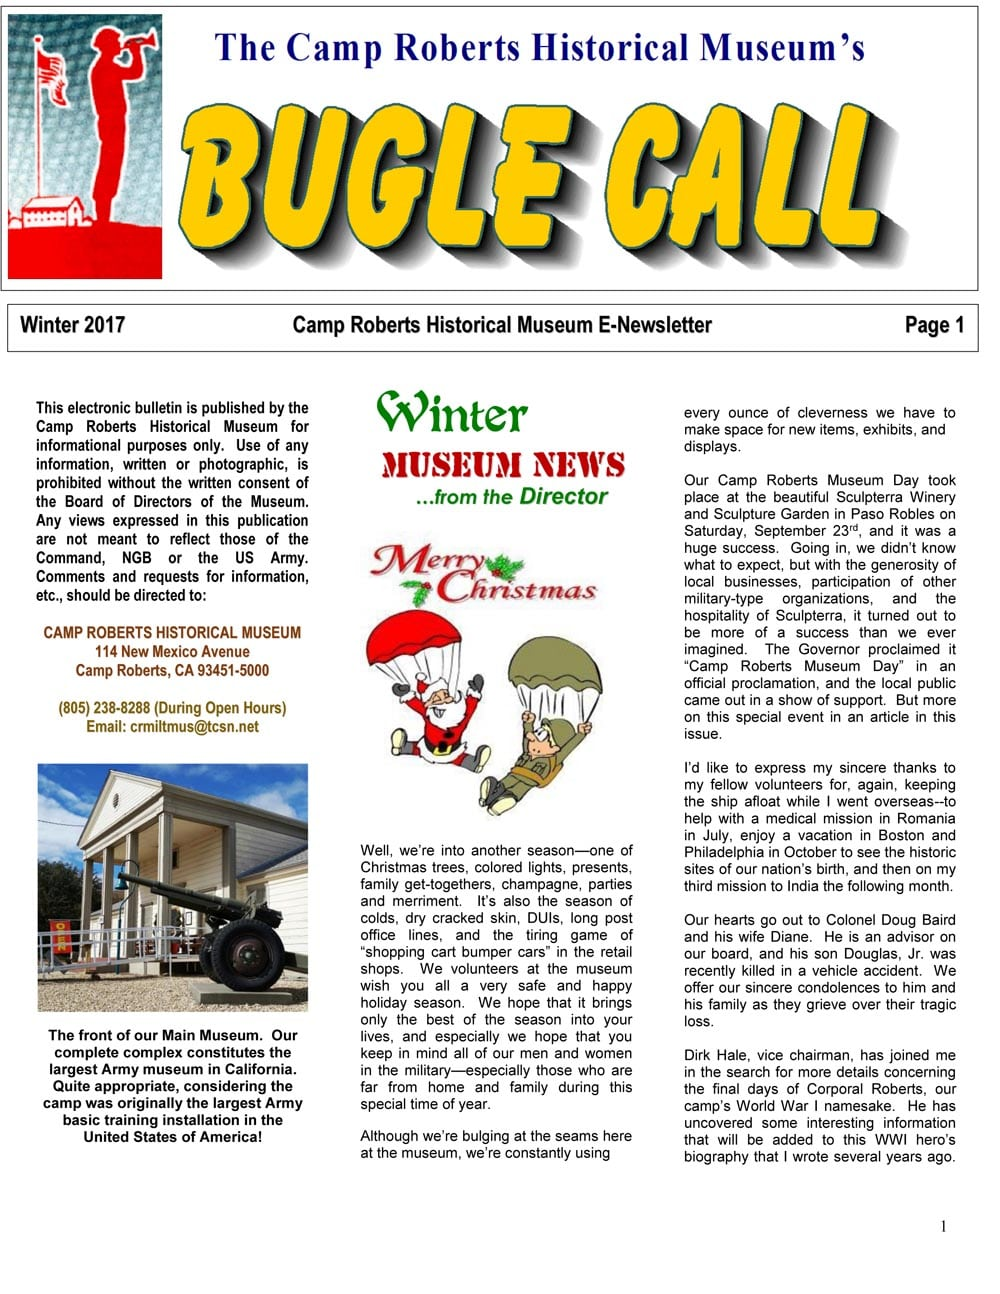 The Bugle Call - Camp Roberts Historical Museum